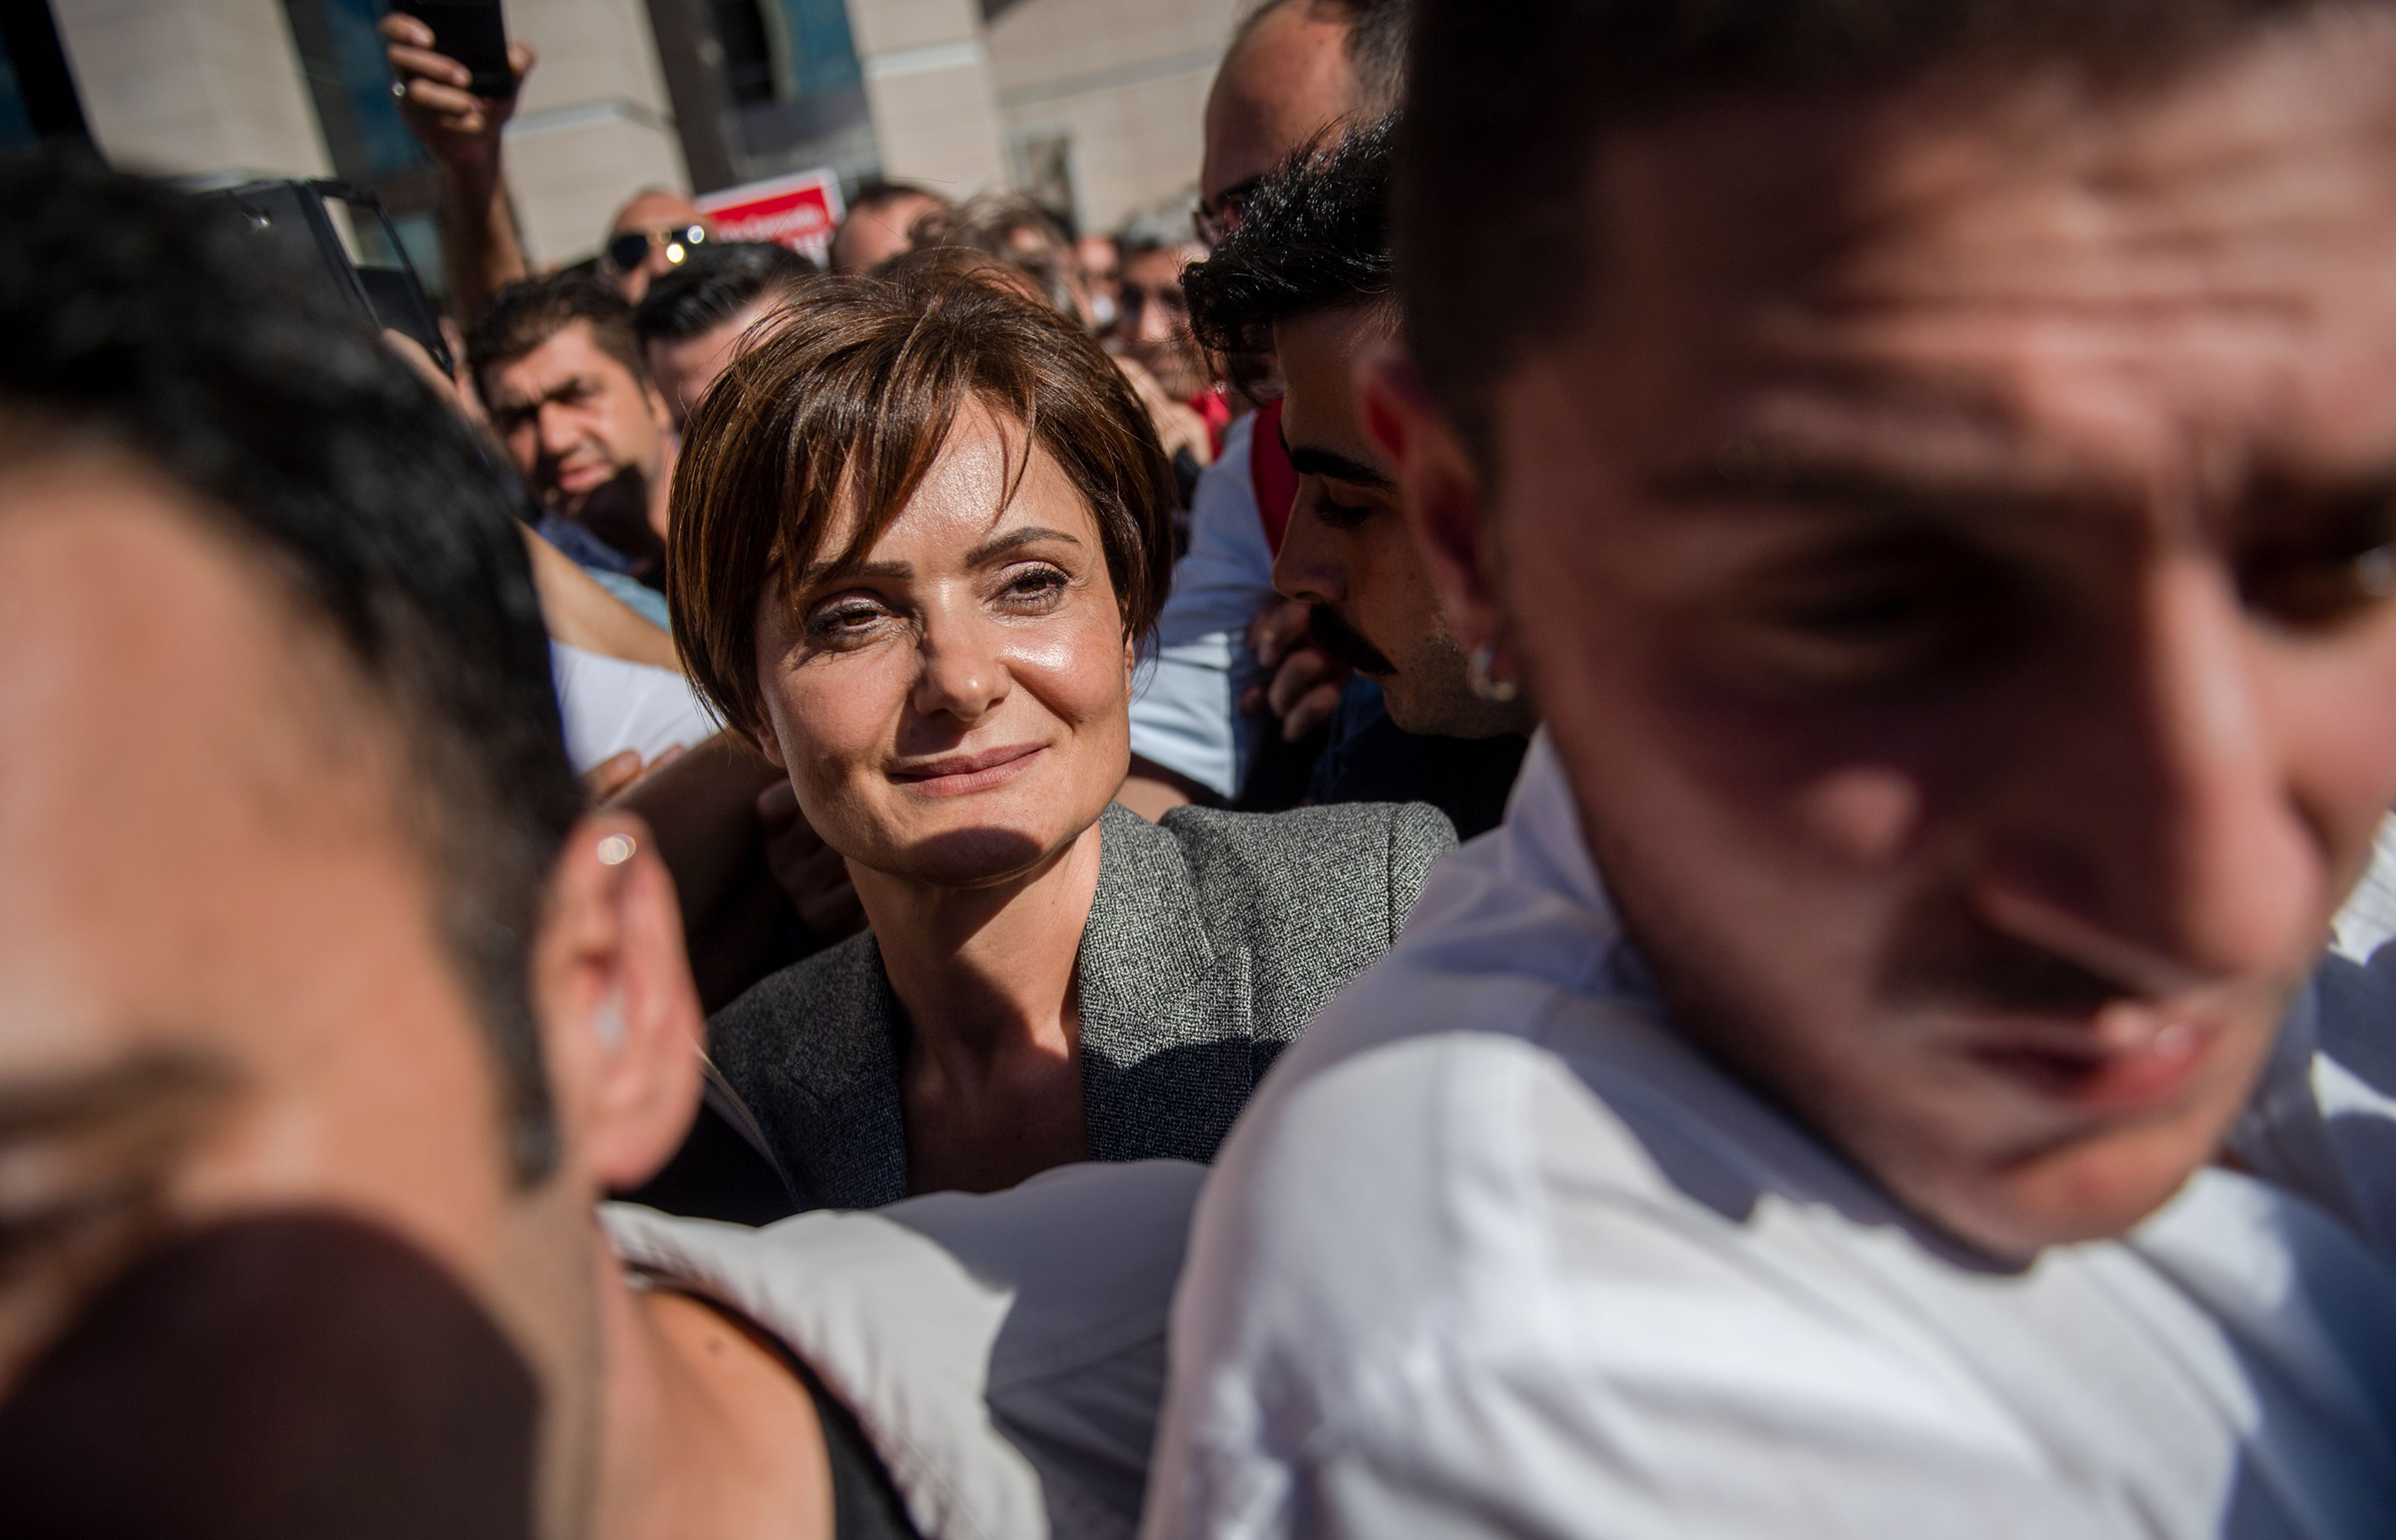 Dr. Canan Kaftancioglu, center, leaves the Caglayan courthouse in Istanbul on Sept. 6, 2019.